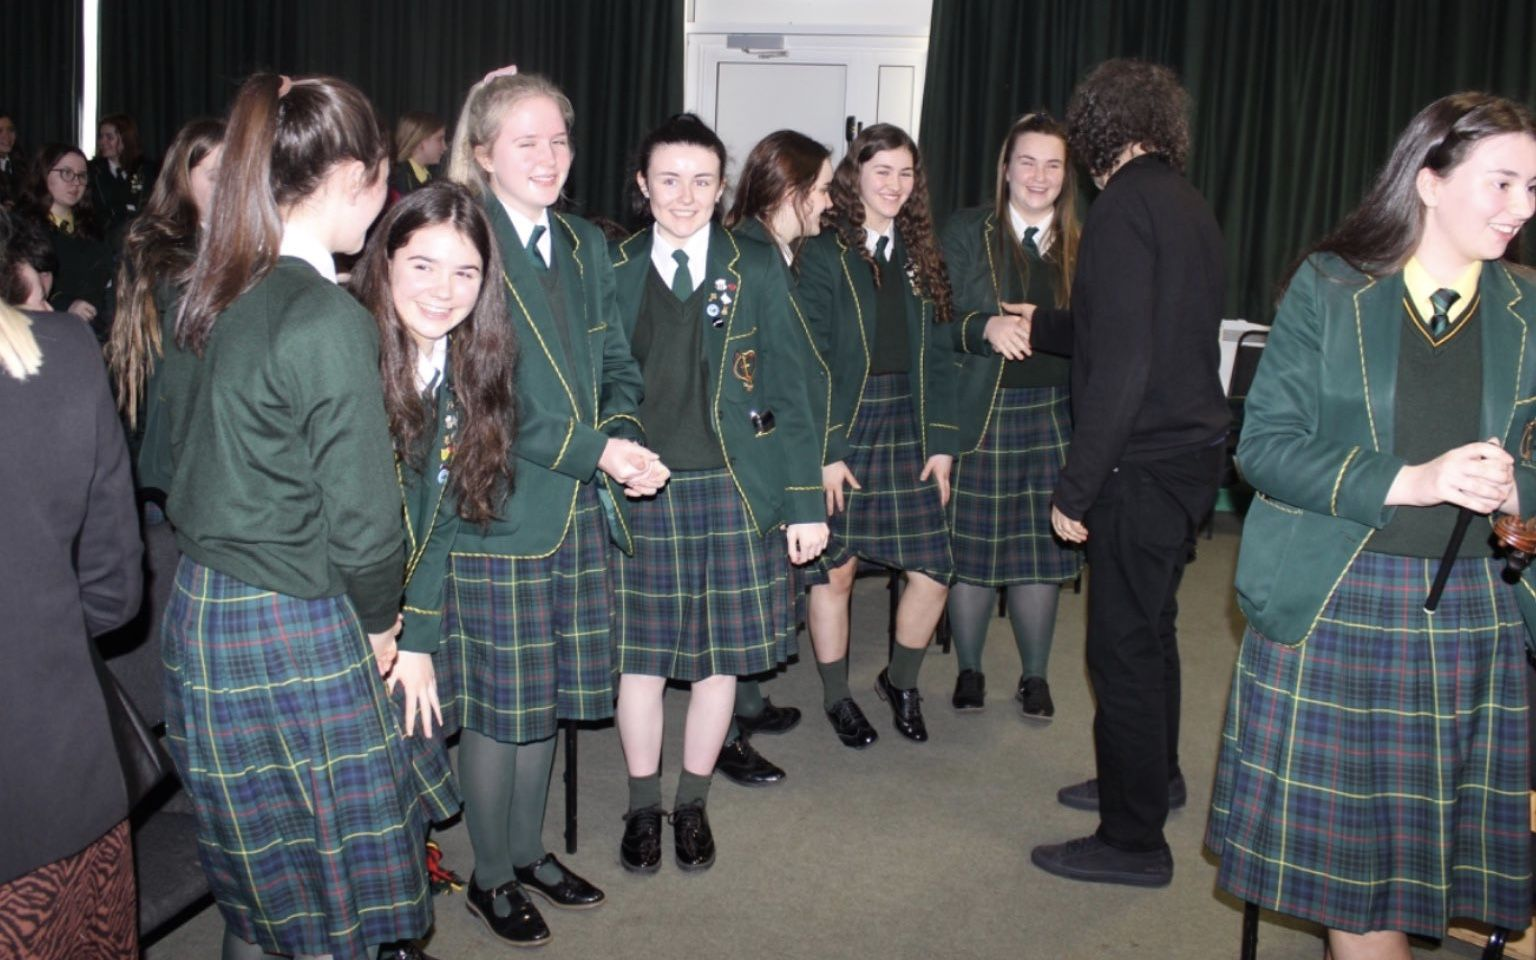 Stephen Rea visits St. Catherine's College in Armagh